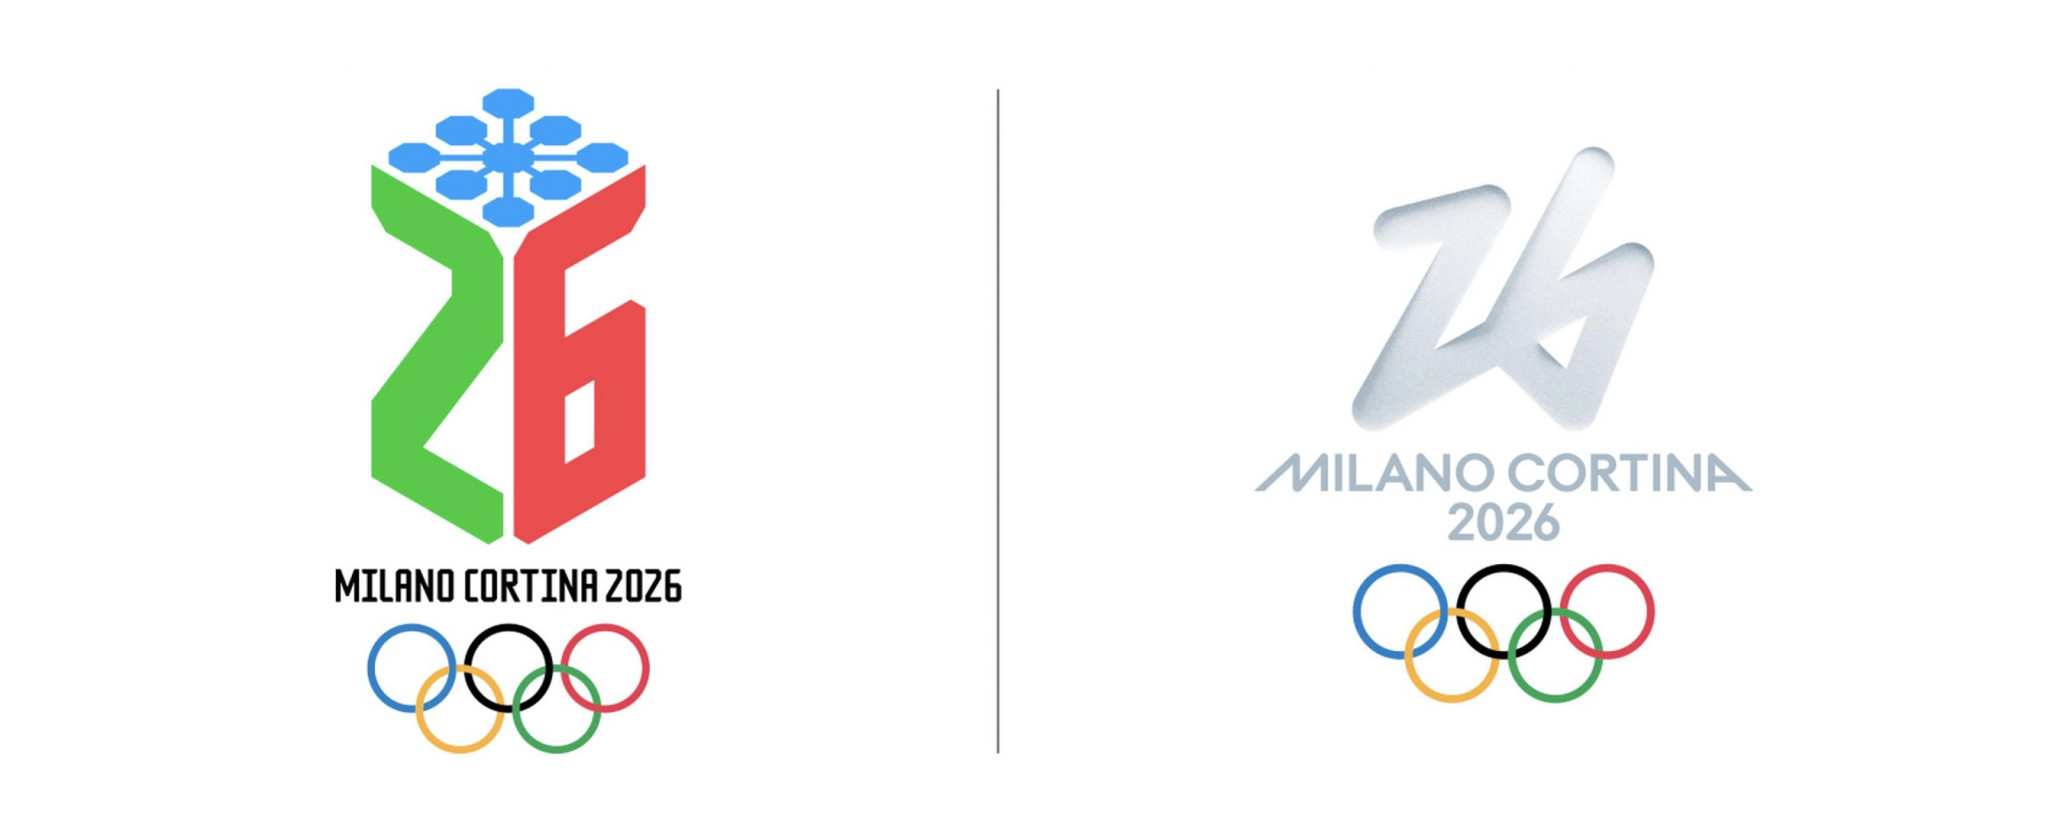 A vote to decide between two logos for Milan Cortina 2026 has begun - Futura is seen on the right and Dado on the left ©Milan Cortina 2026